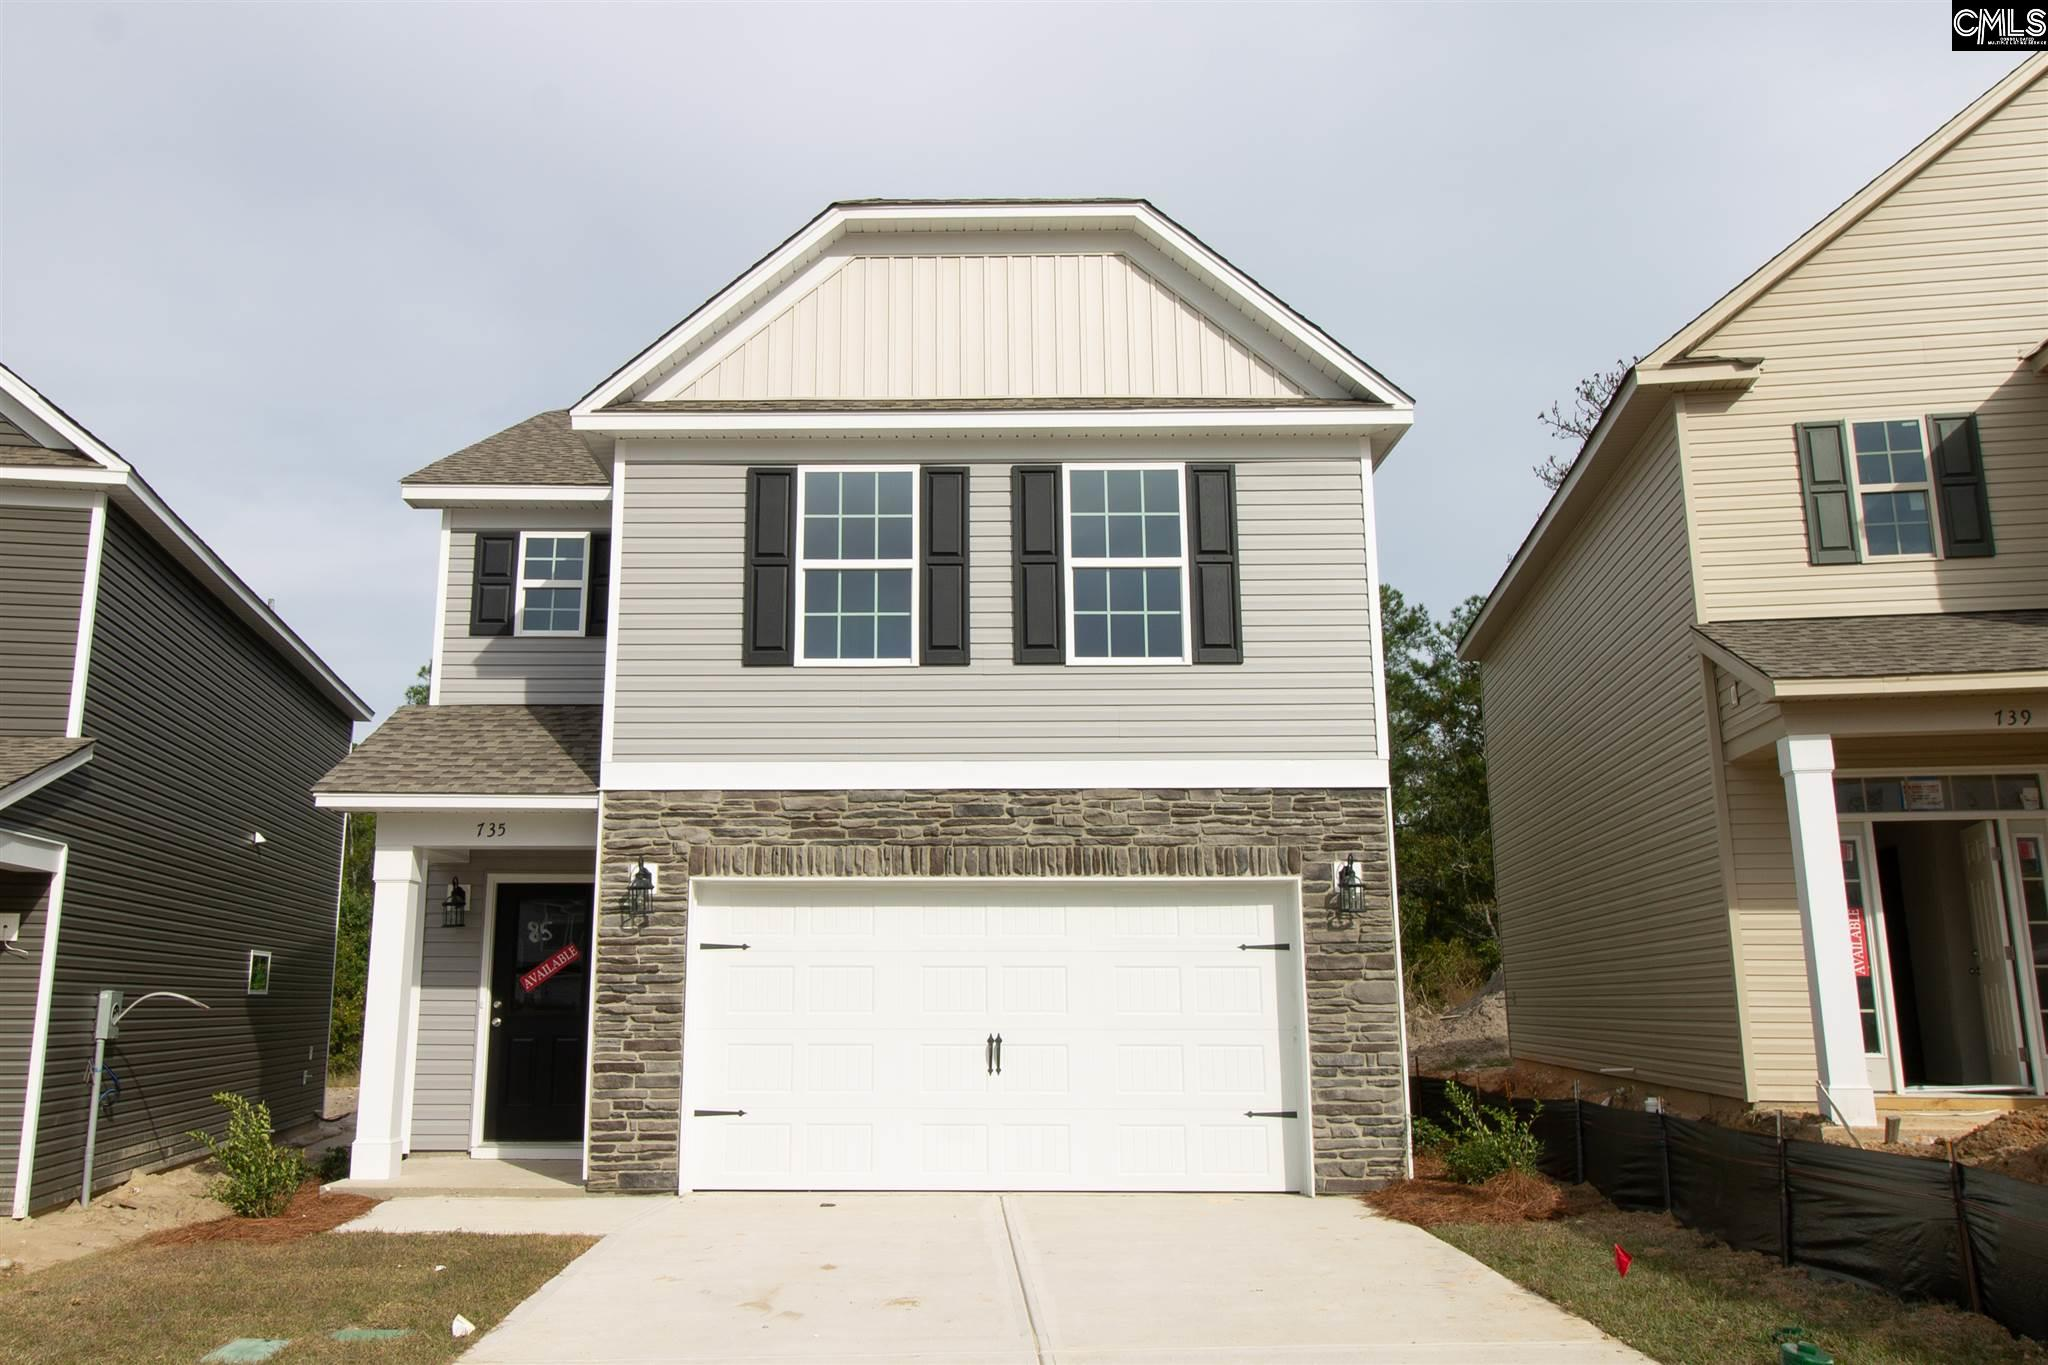 735 Dawsons Lexington, SC 29072